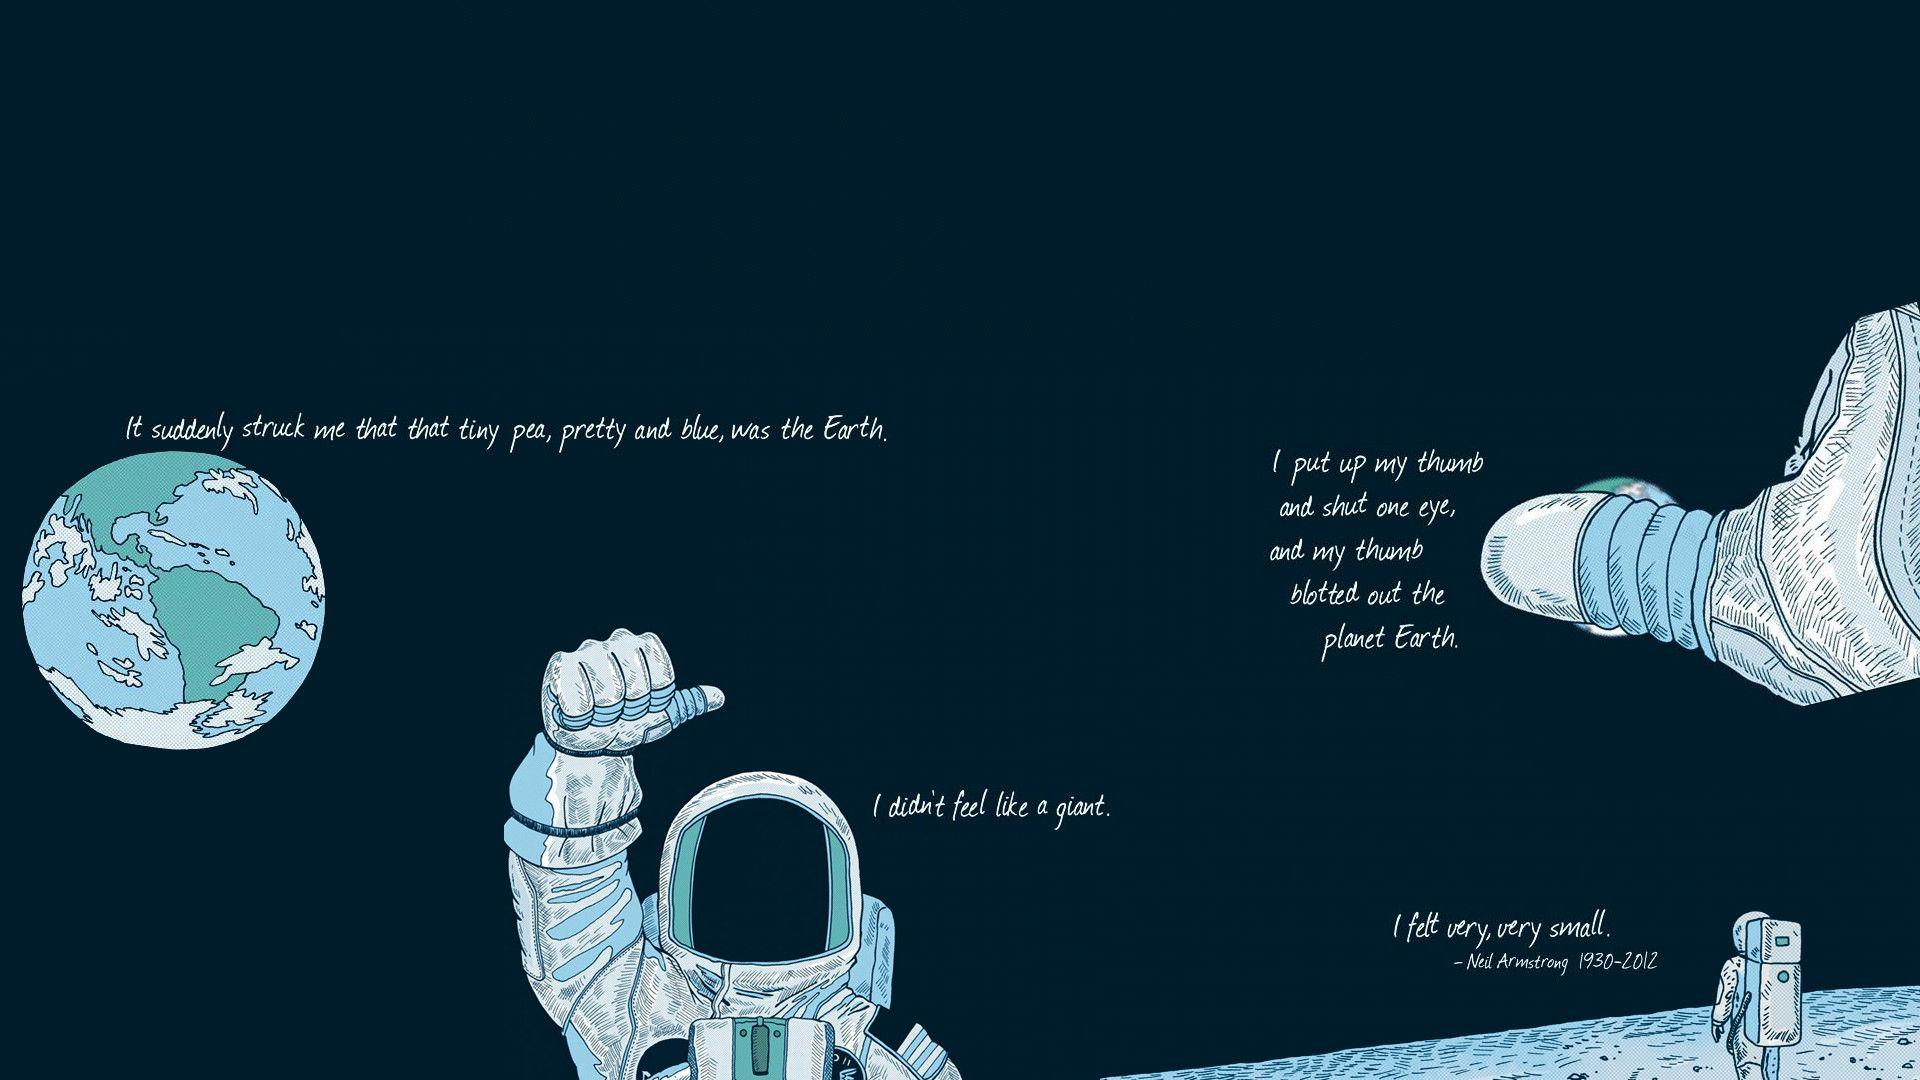 Neil Armstrong Wallpapers 11